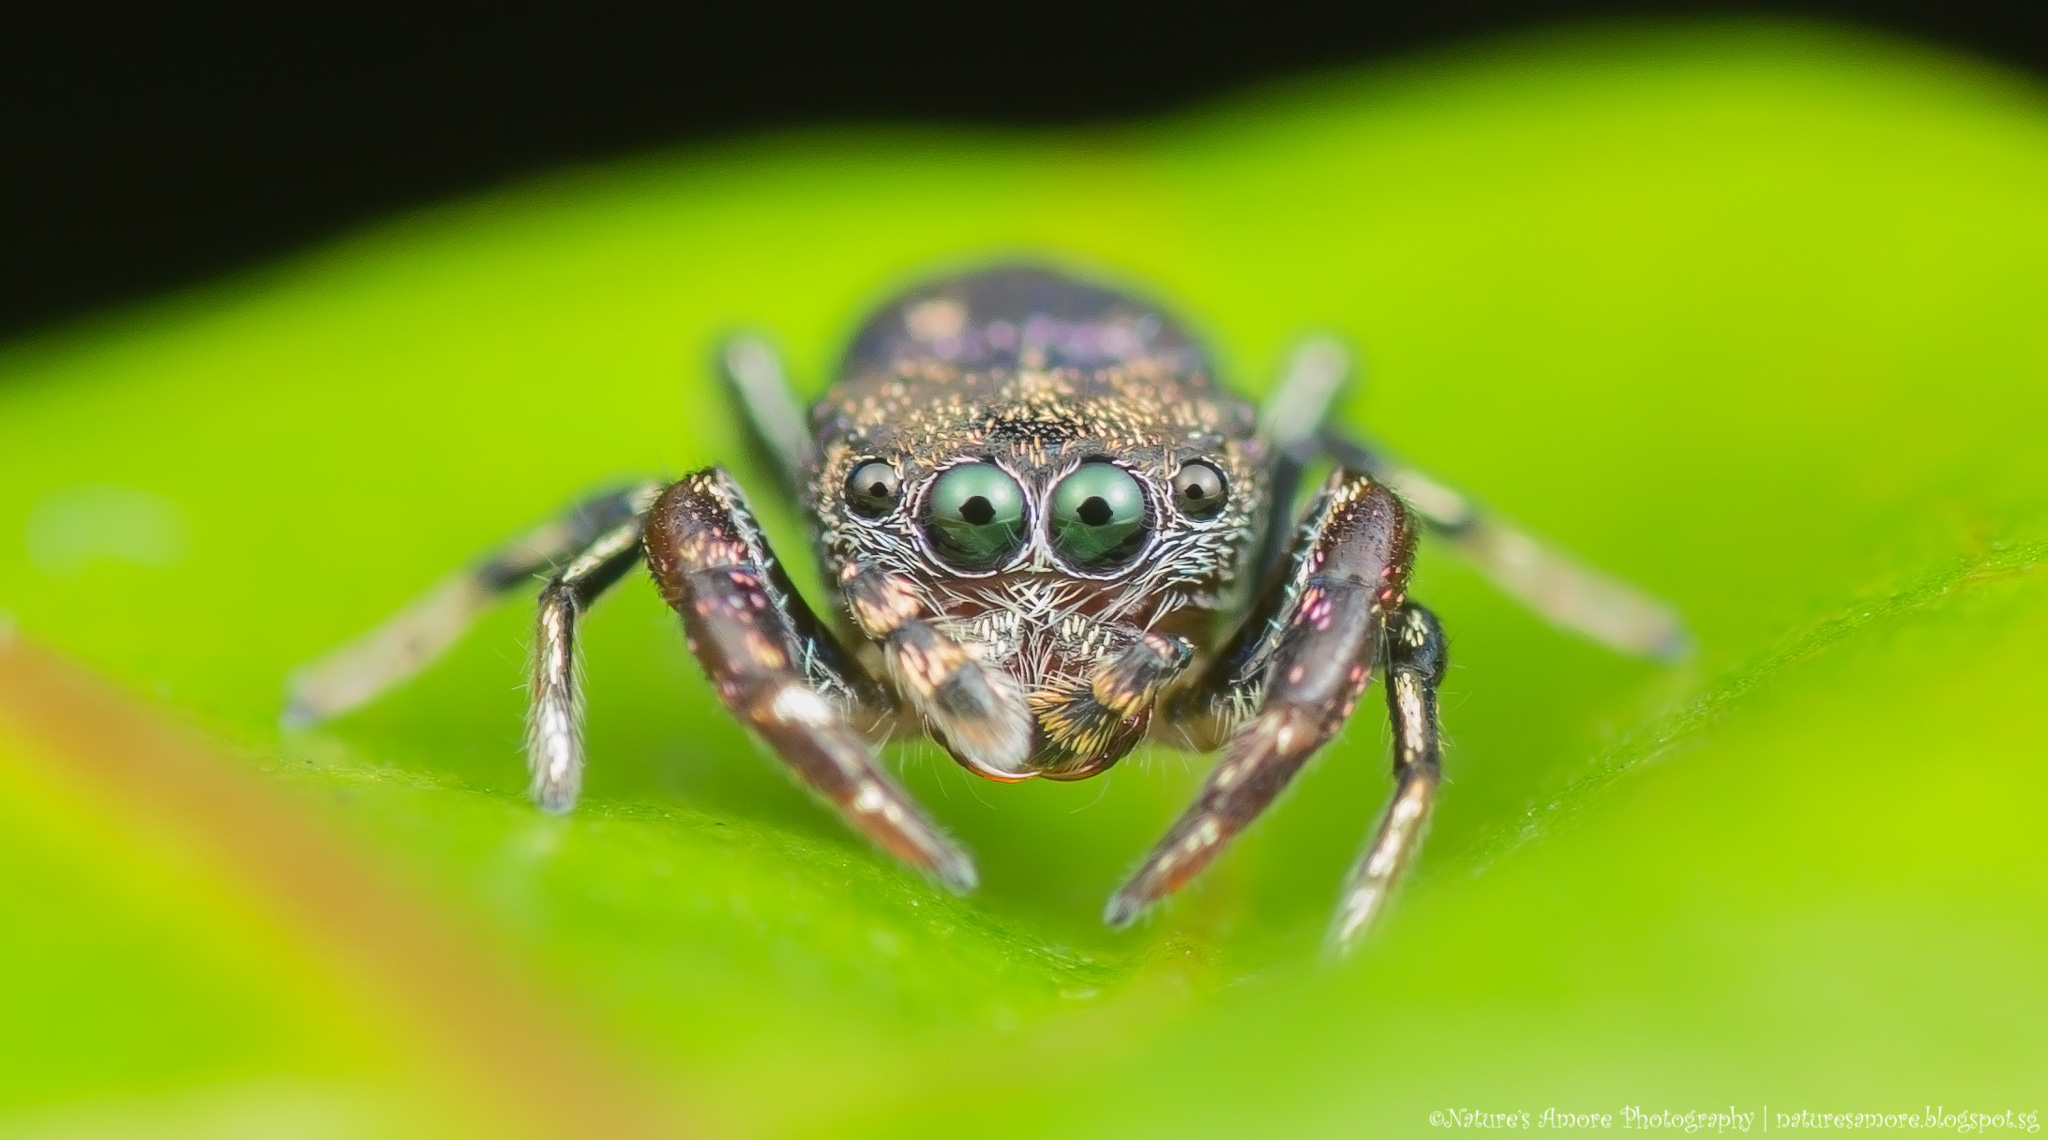 Jumping Spider - Simaetha sp.